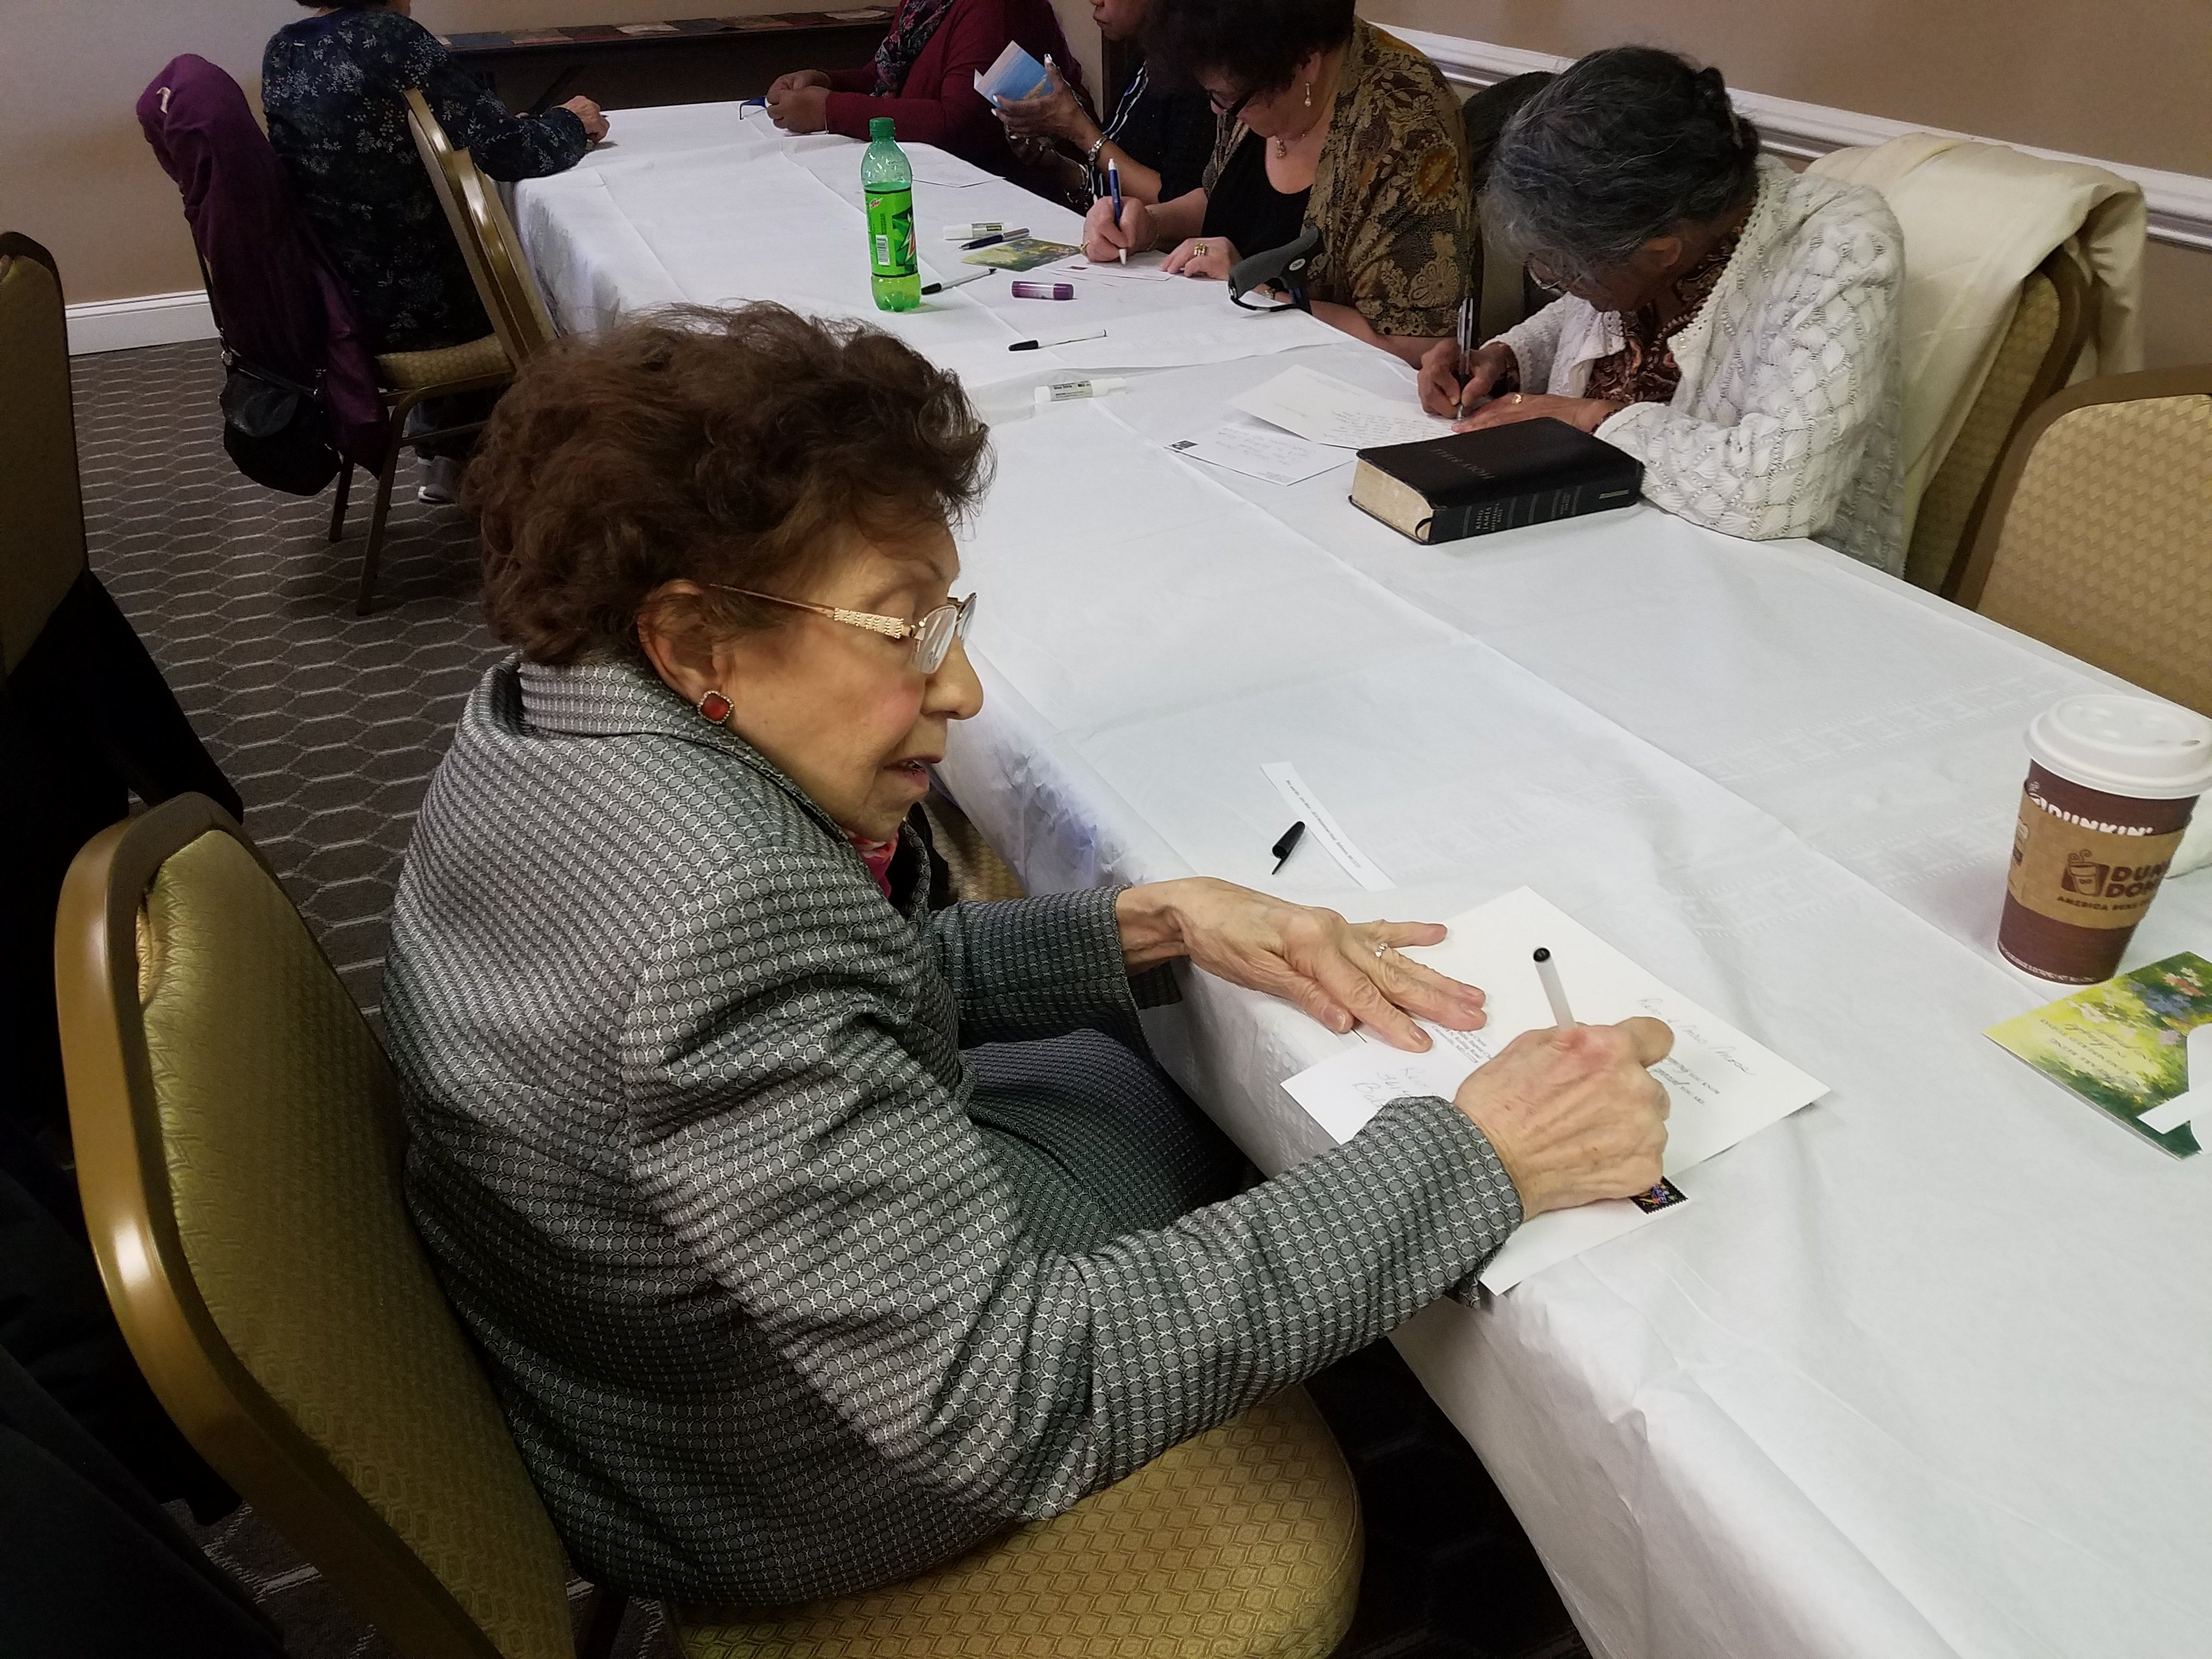 Wonderful letter writing ministry